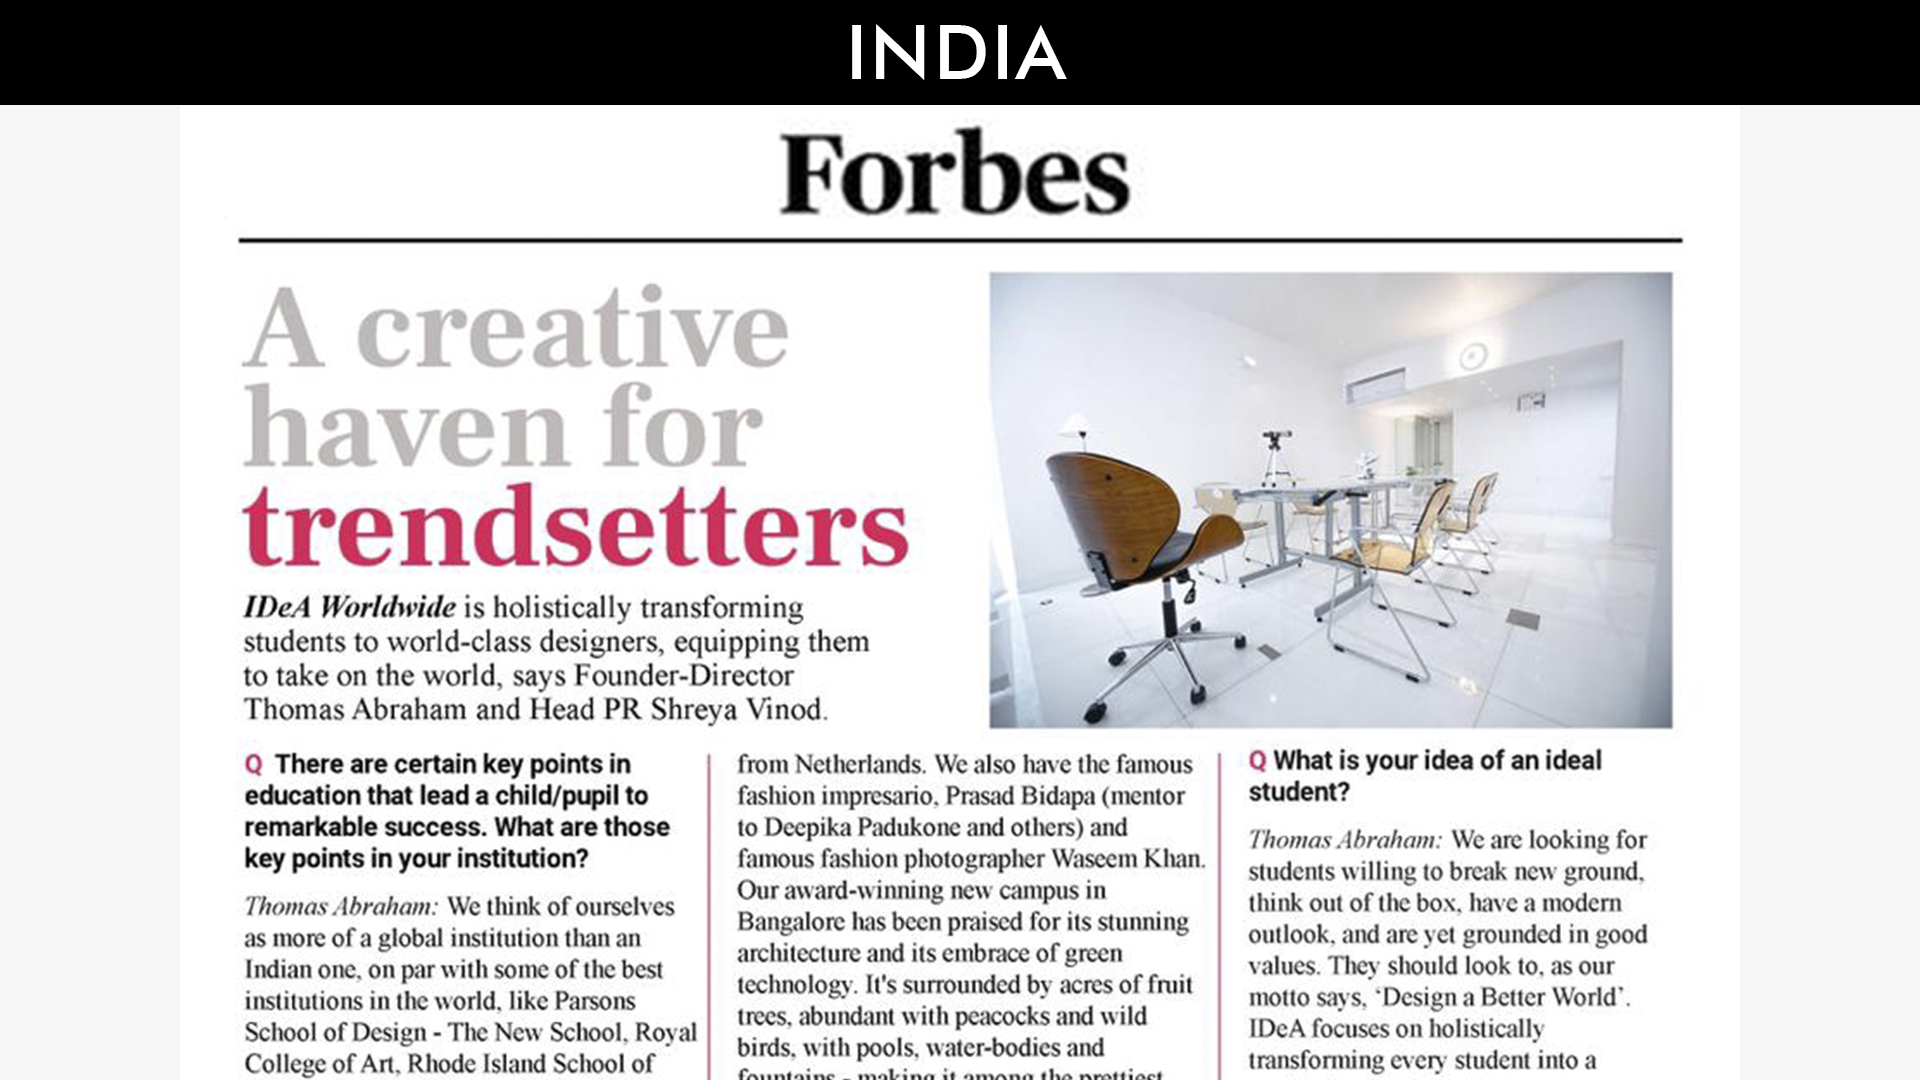 Idea Worldwide featured on the times of india